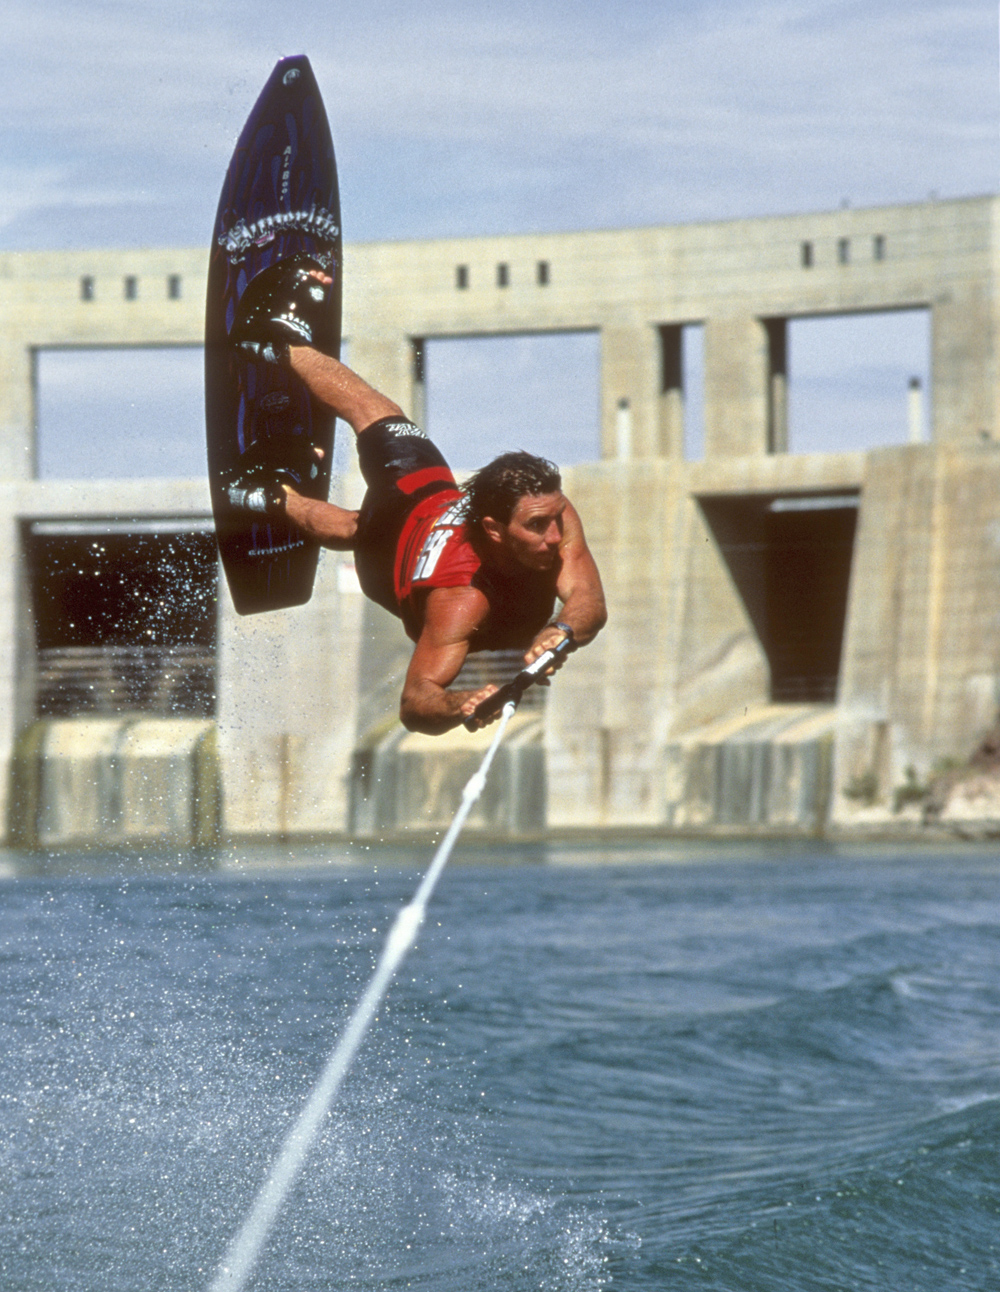 adventures-water-skiing-hydrofoiling-1994-ron-stack-wakeboard-air-raley